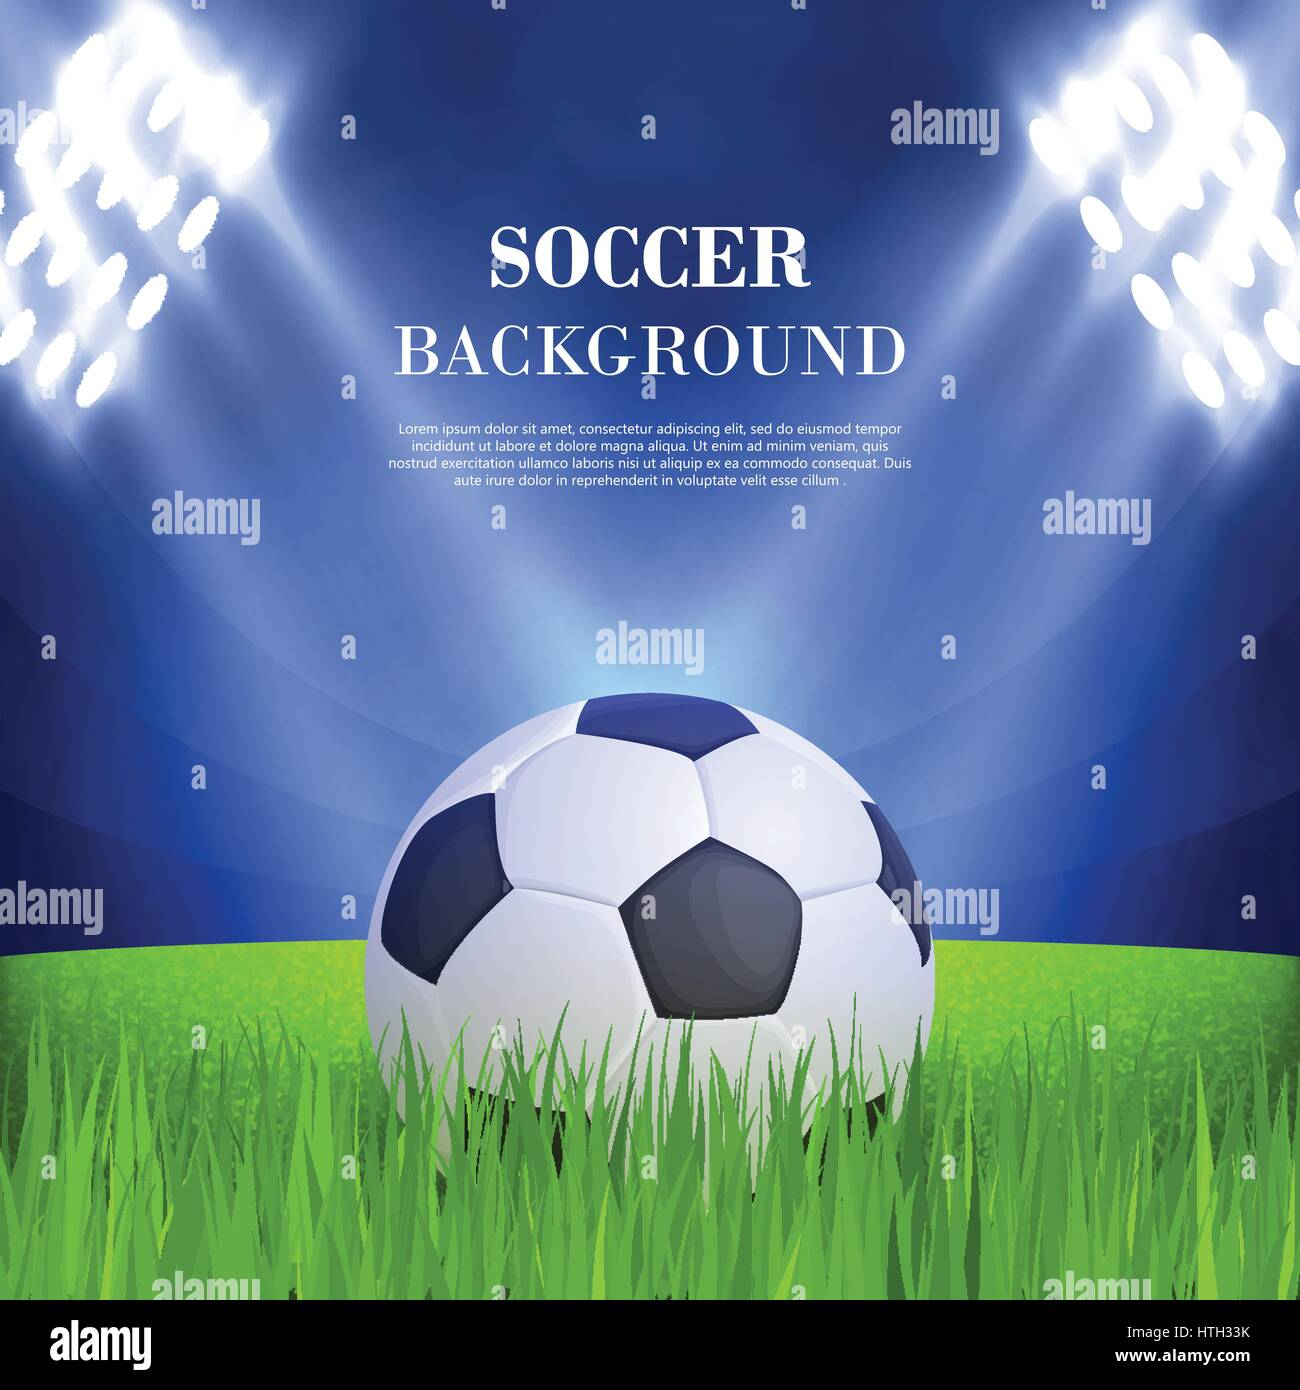 Soccer background concept - Stock Vector